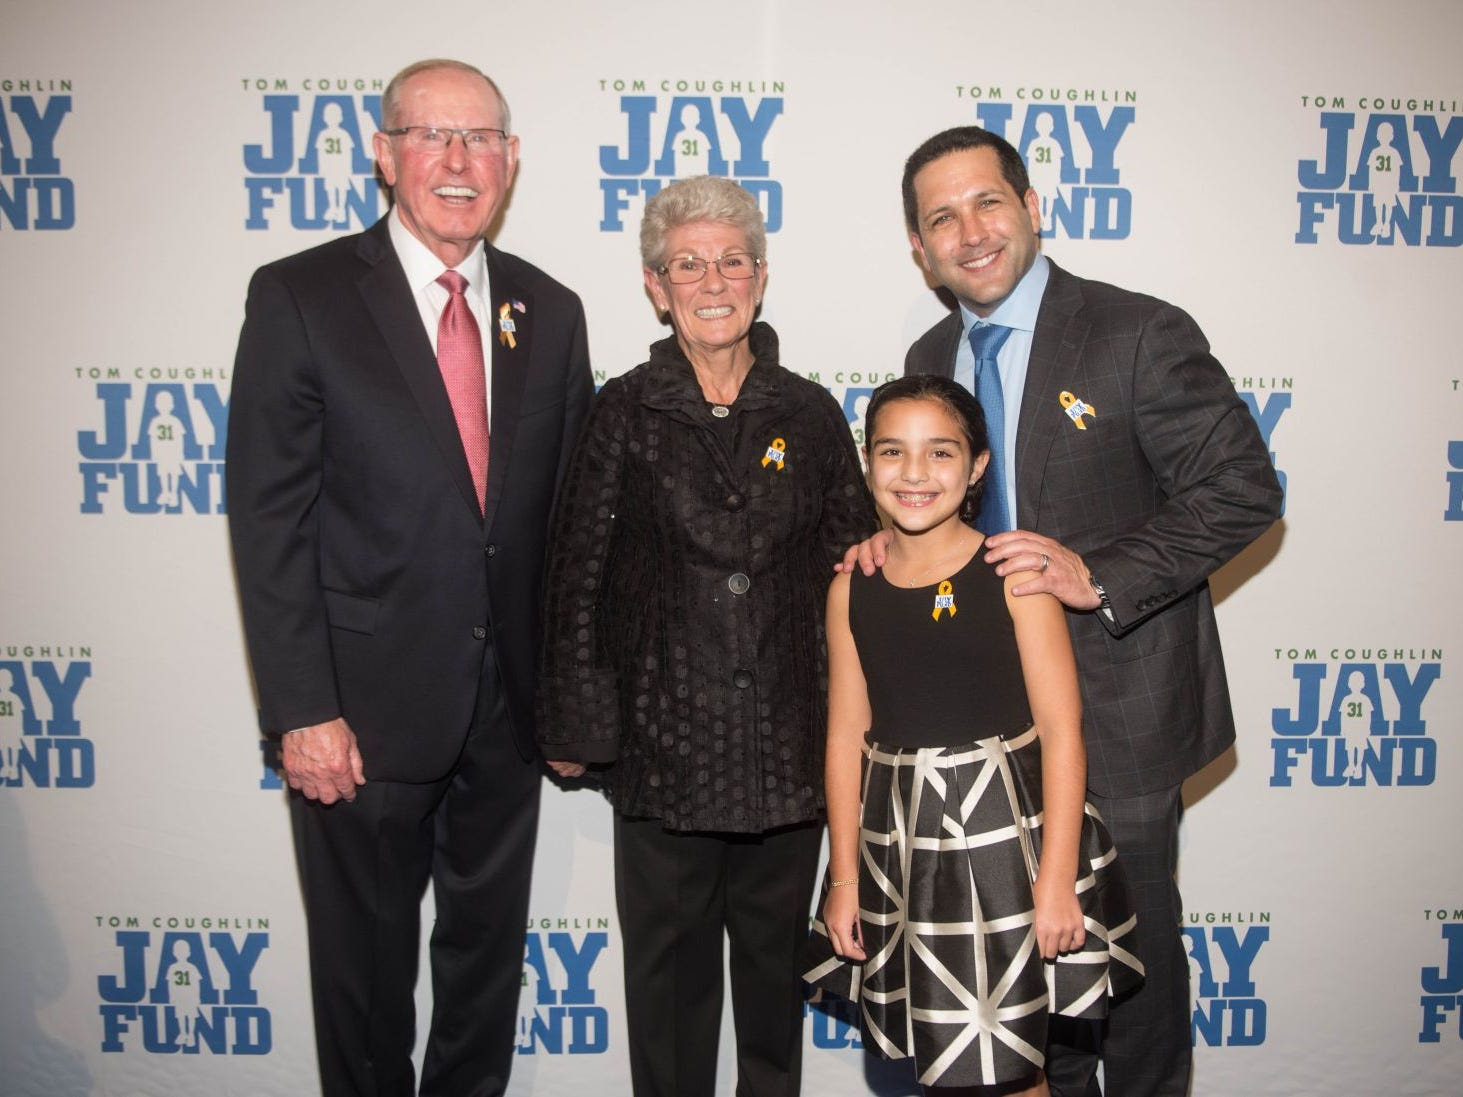 Tom Coughlin, Judy Coughlin, Dylan Schefter and Adam Schefter. The 14th annual Jay Fund Champions for Children Gala was held at Cipriani 42nd Street. 09/21/2018